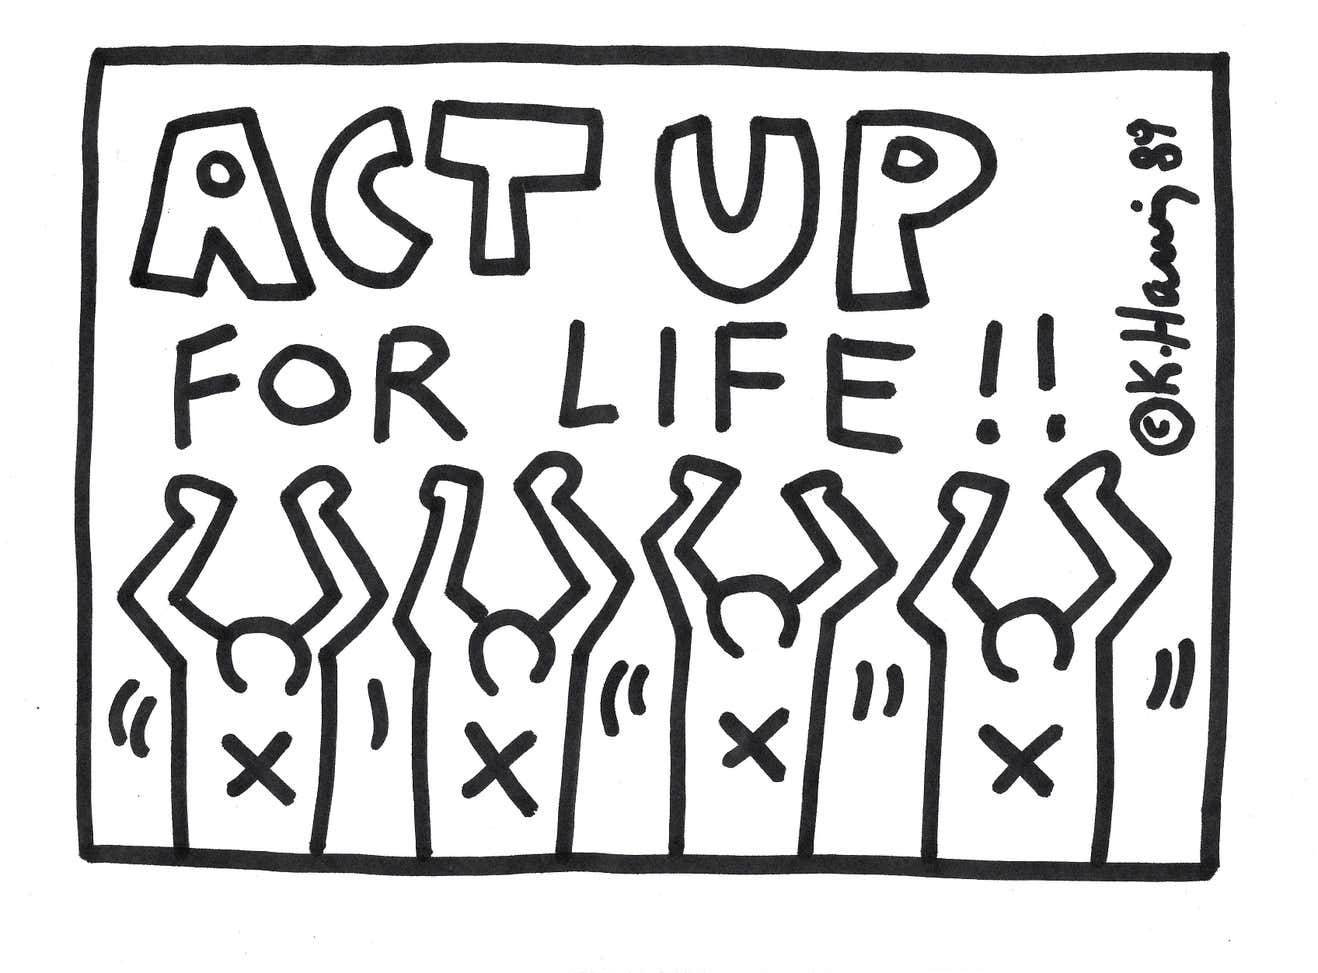 keith_harring_master.jpg?disable=upscale&auto=webp&quality=60&width=1318